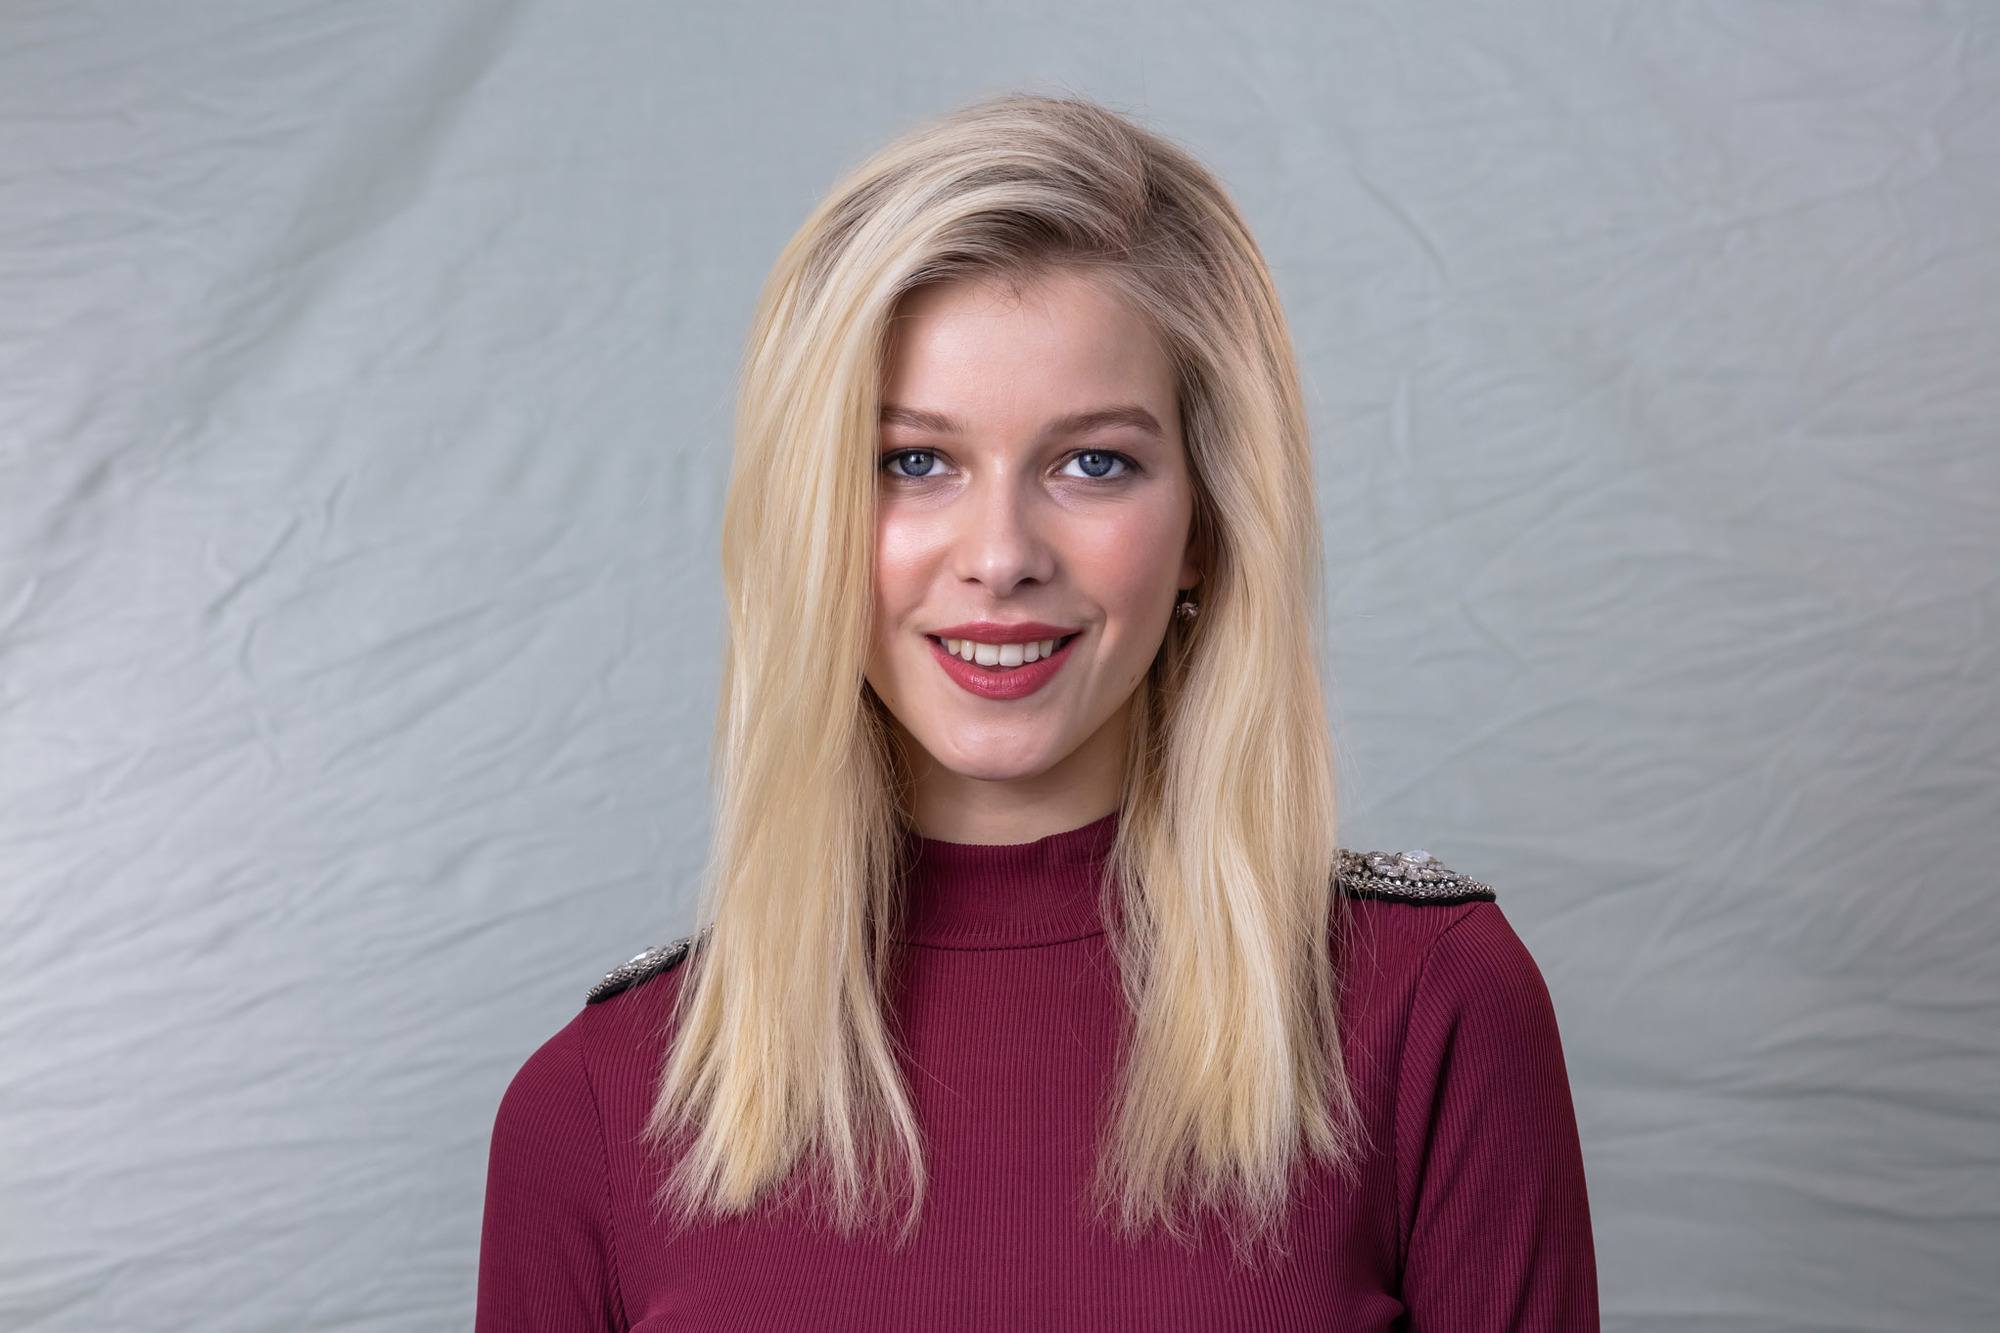 Volume hair: Landscape shot of a blonde model with straight mid-length hair, parted in a side parting, wearing a maroon high neck top